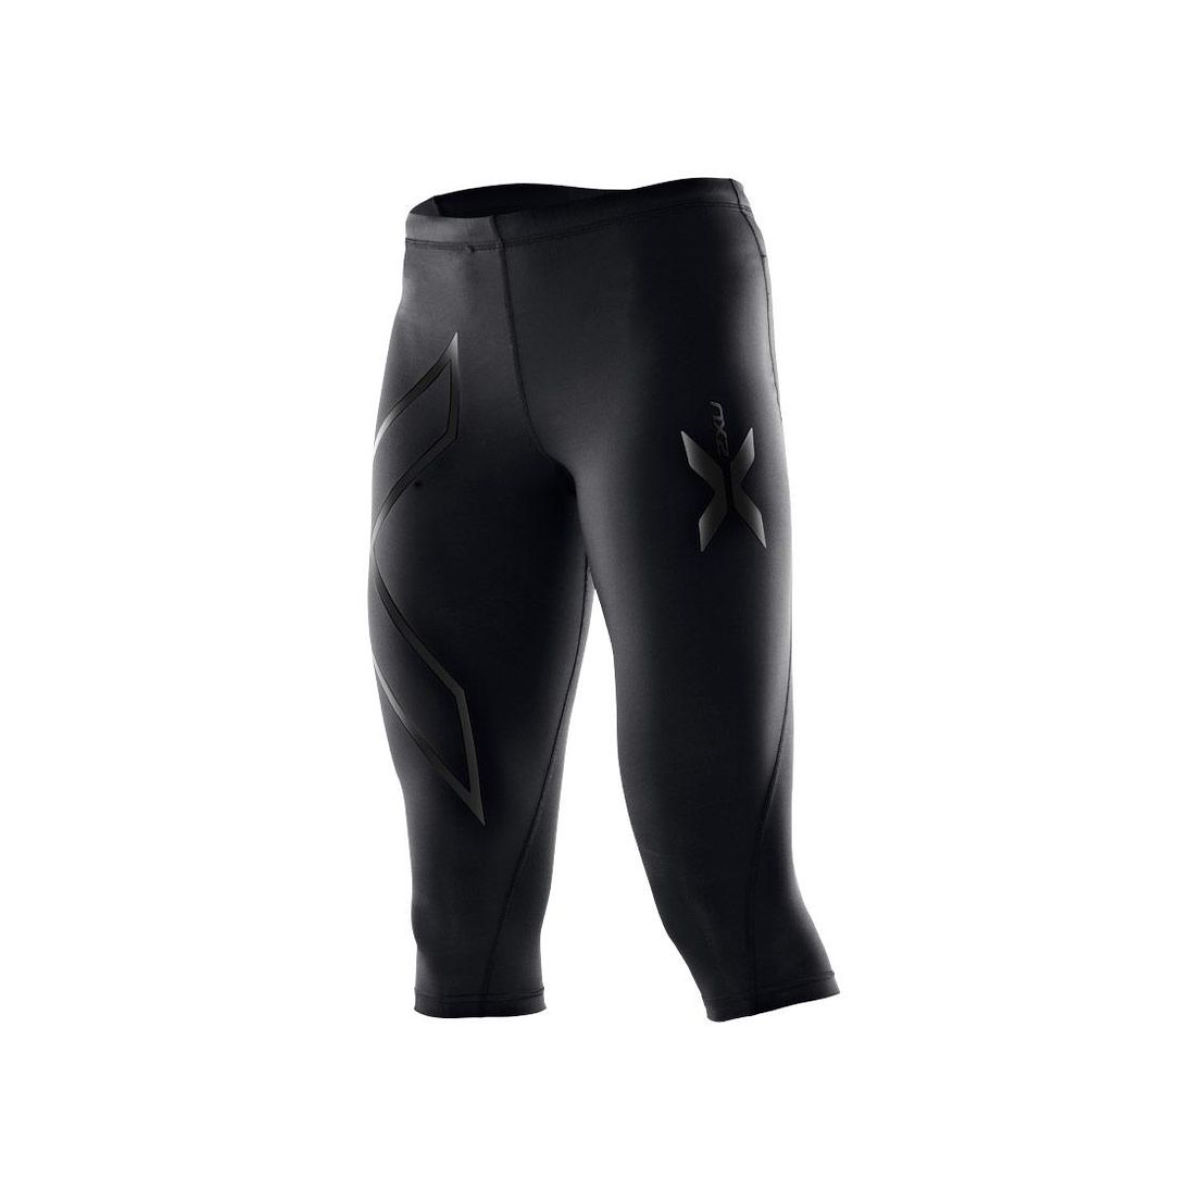 Corsaire 2XU Compression - XL Black/Silver Logo Sous-vêtements compression